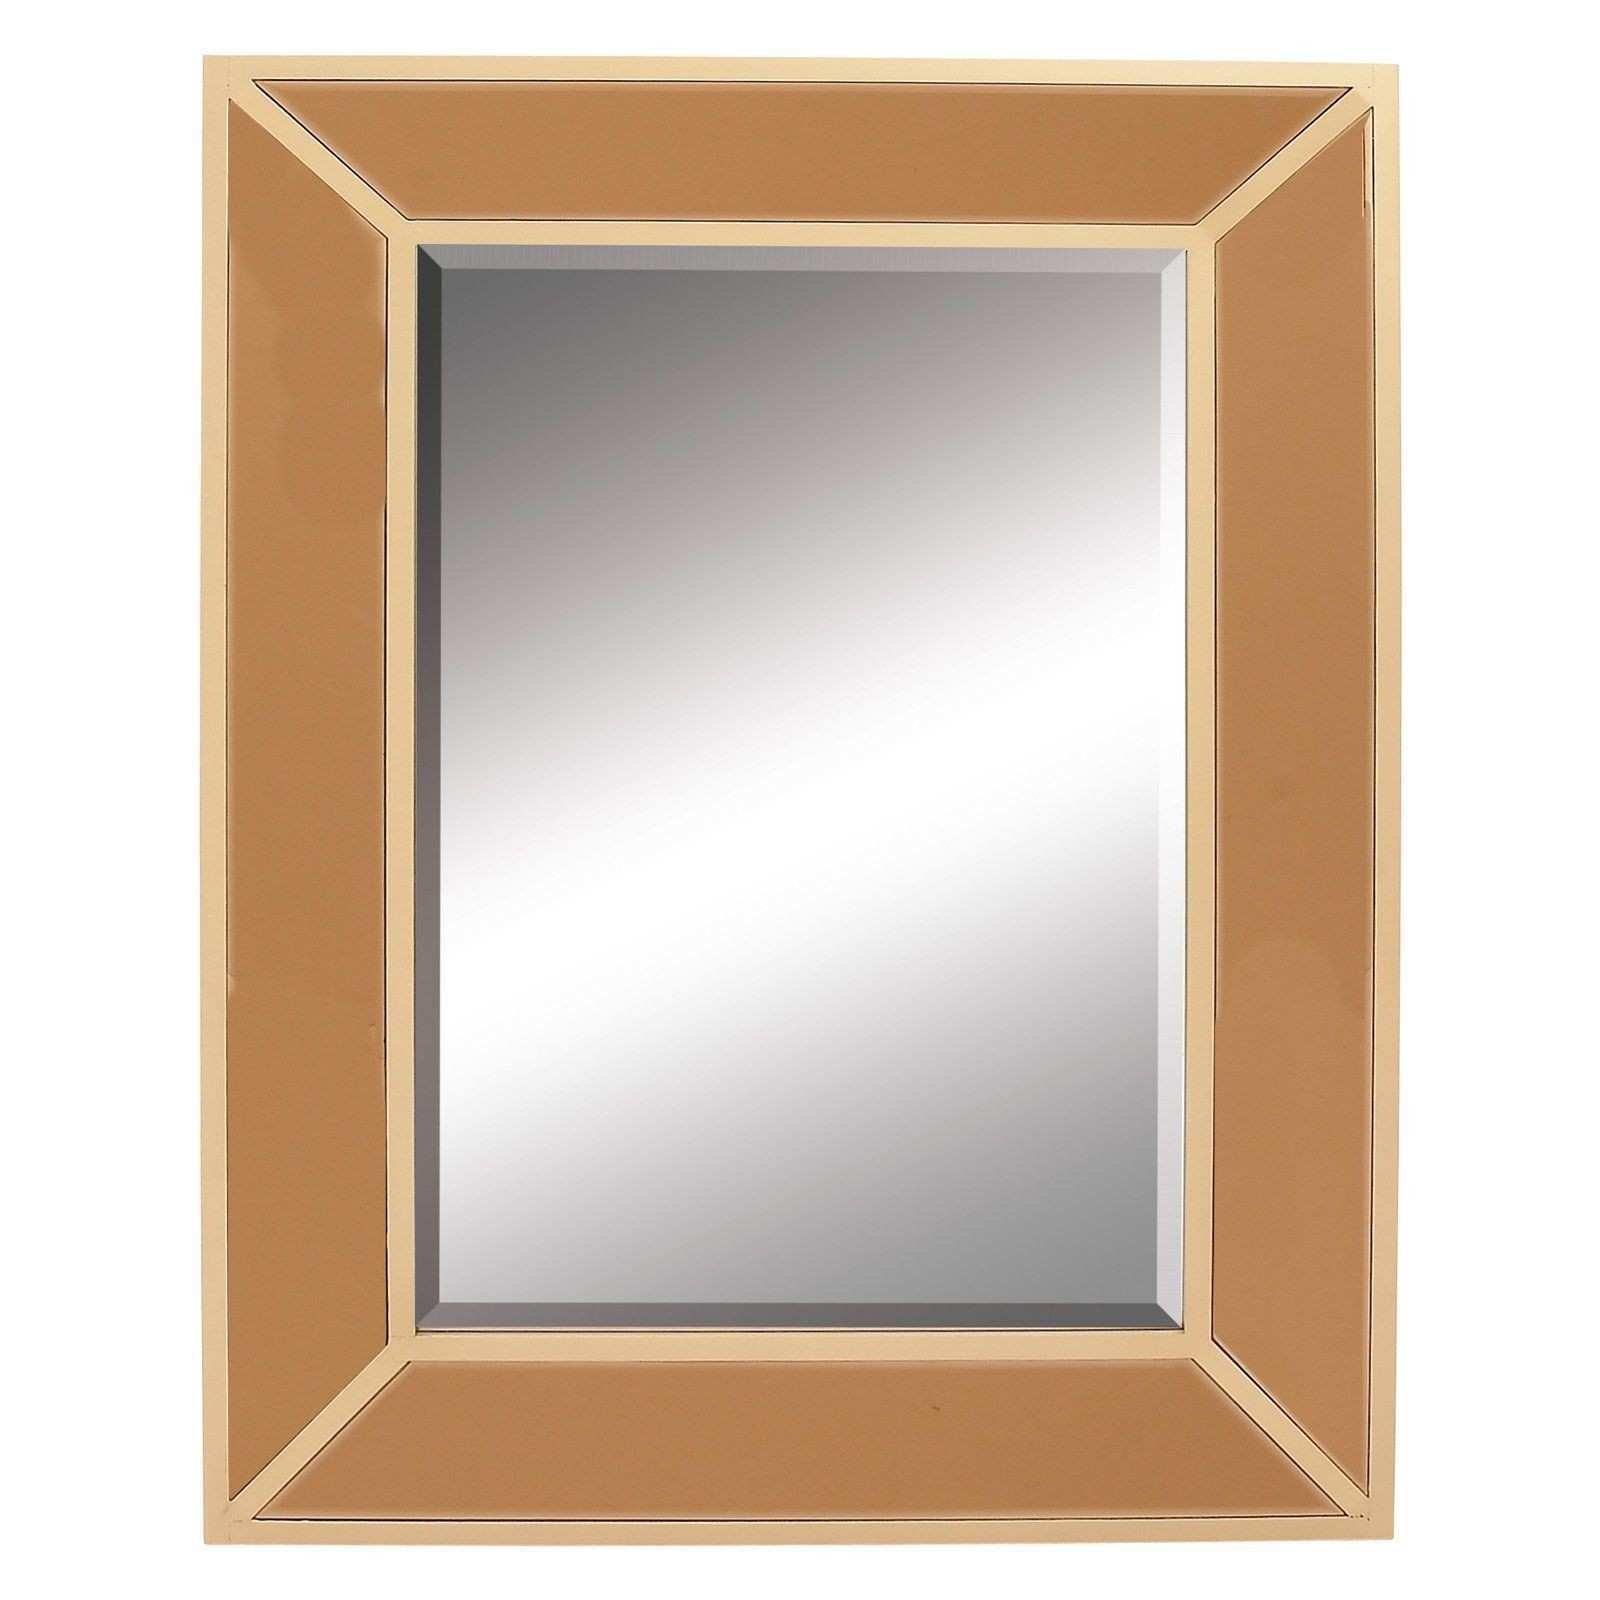 DecMode Rustic Reflections Wooden Frame Wall Mirror